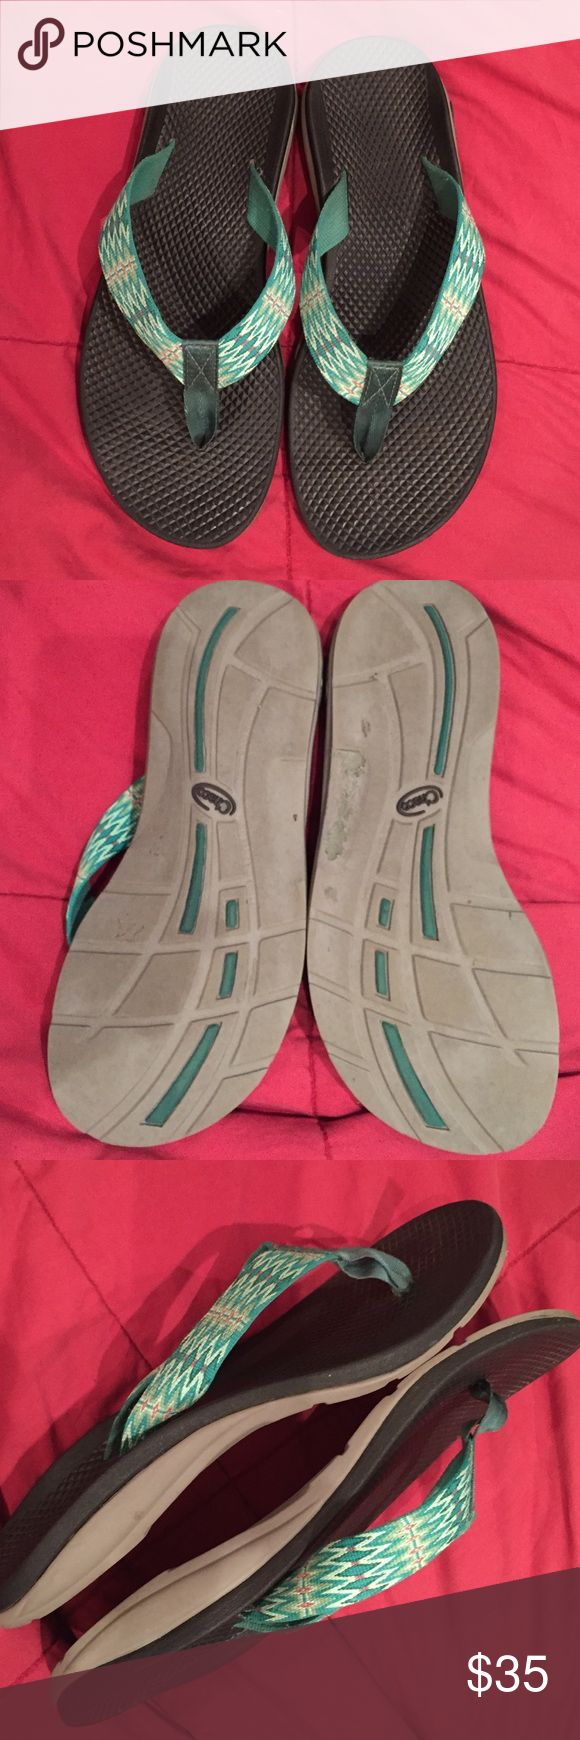 Chaco flip flops Great flips, minor wear only, lots of life left! Cute green strap design. Top Rated Seller & Fast Shipper! Bundle for a great discount. Reasonable offers considered 😊 Chaco Shoes Sandals